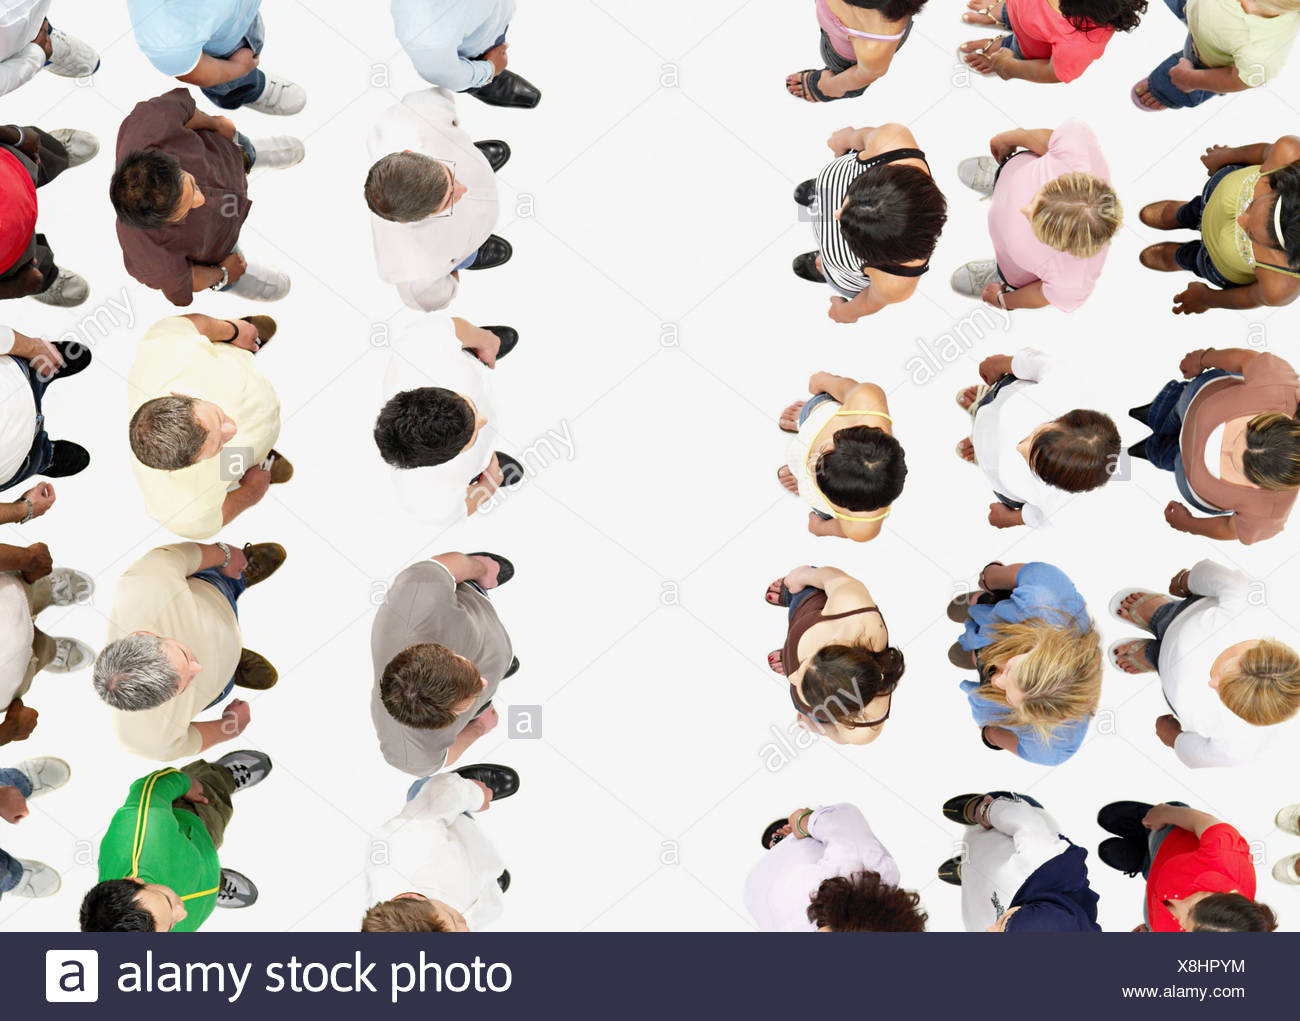 Divided crowd - Stock Image